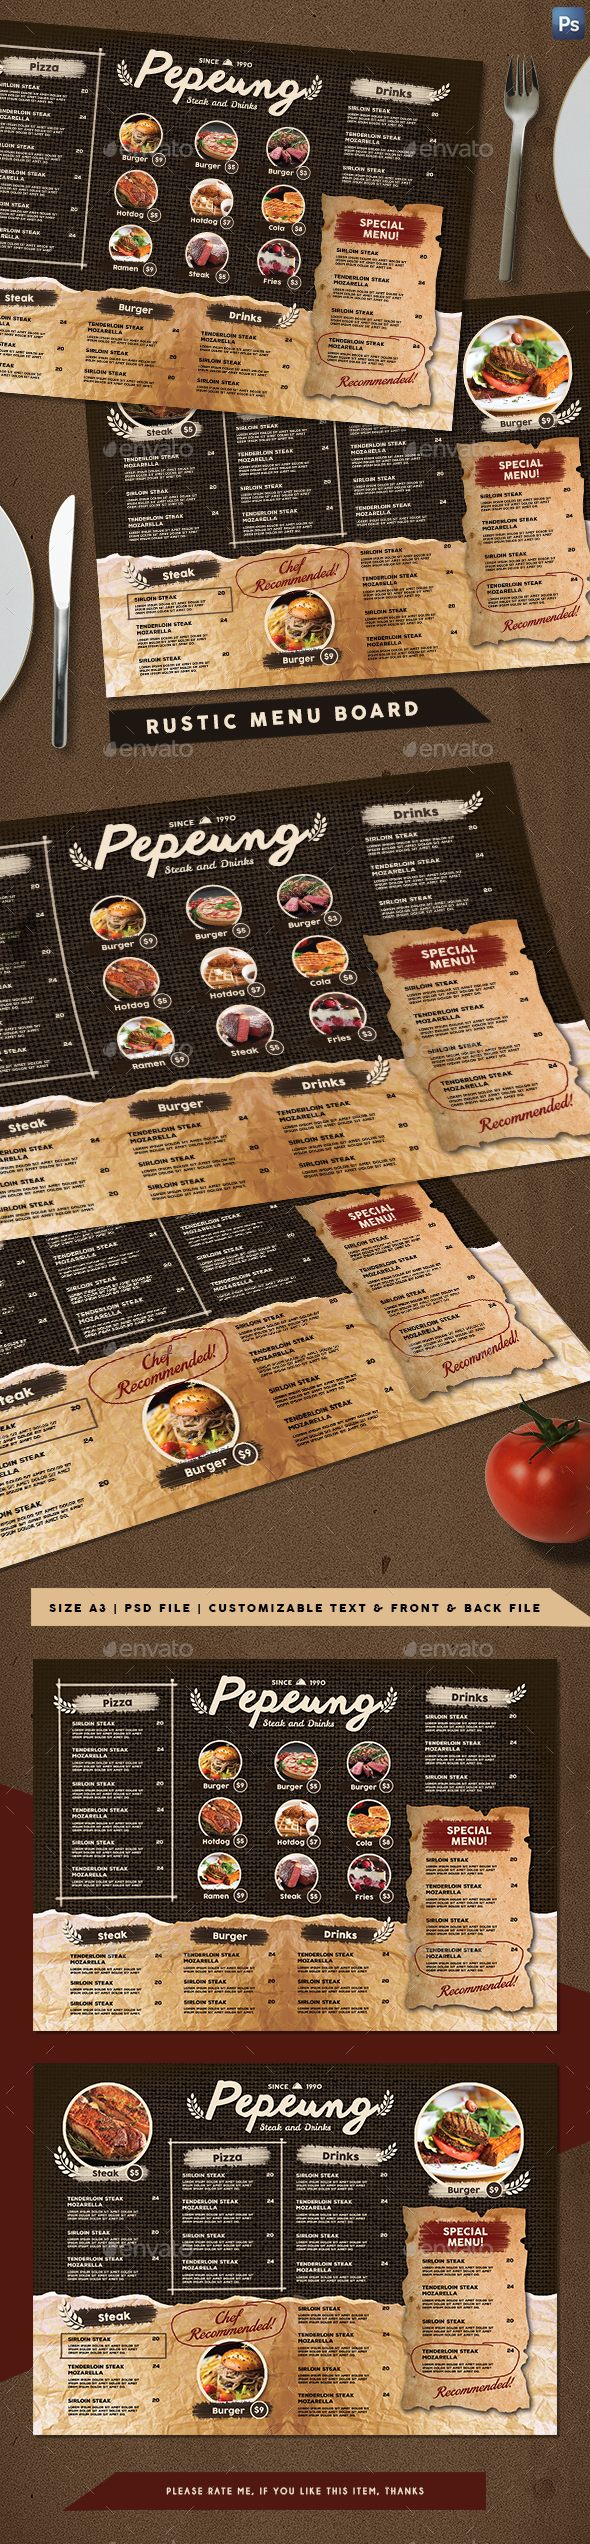 GraphicRiver Rustic Cafe Menu Board 20671000